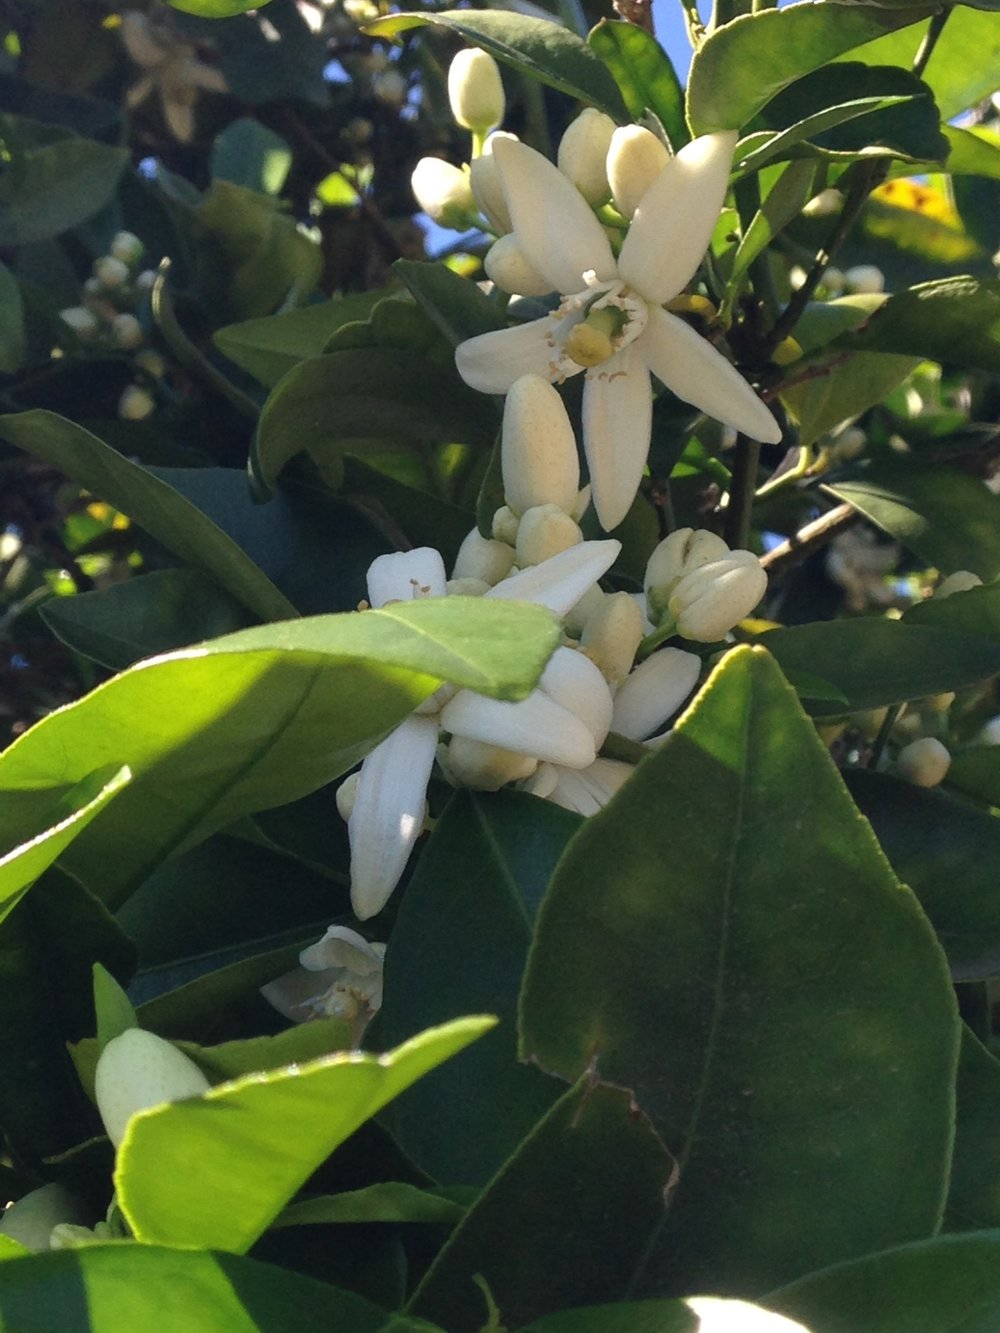 The smell of orange blossoms in March is amazing